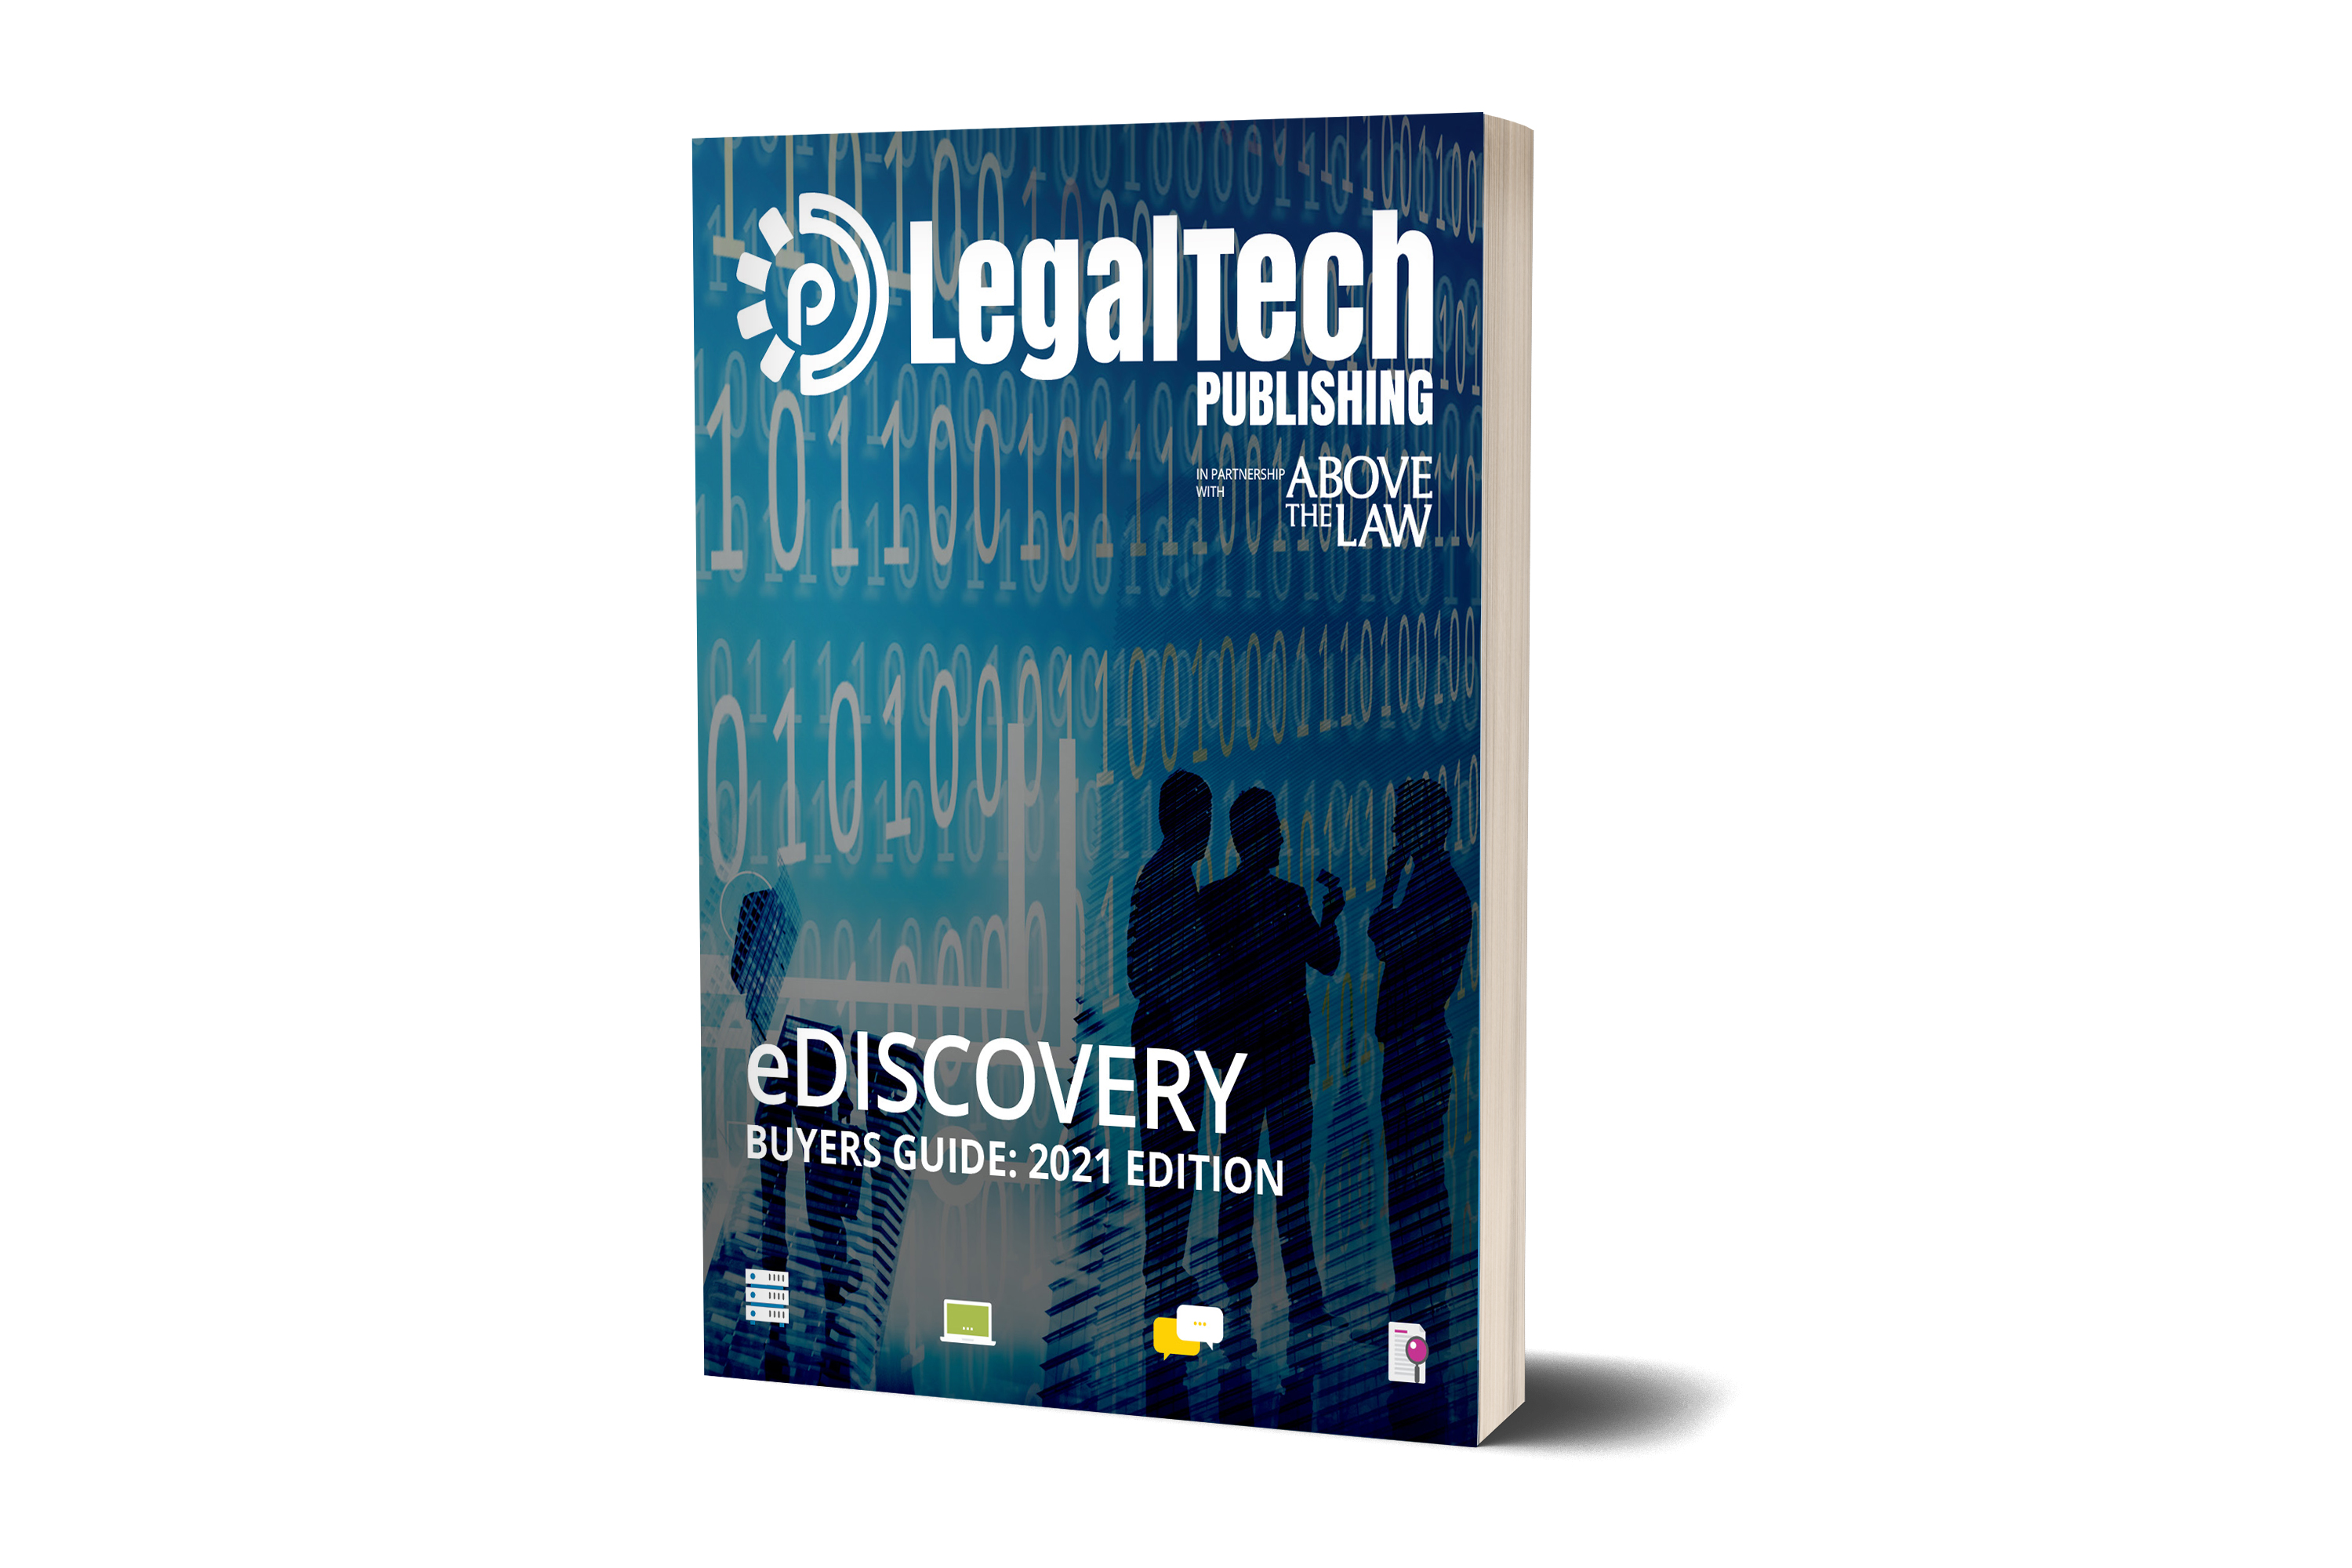 eDiscovery-Buyers-Guide-2021-Cover-Standing